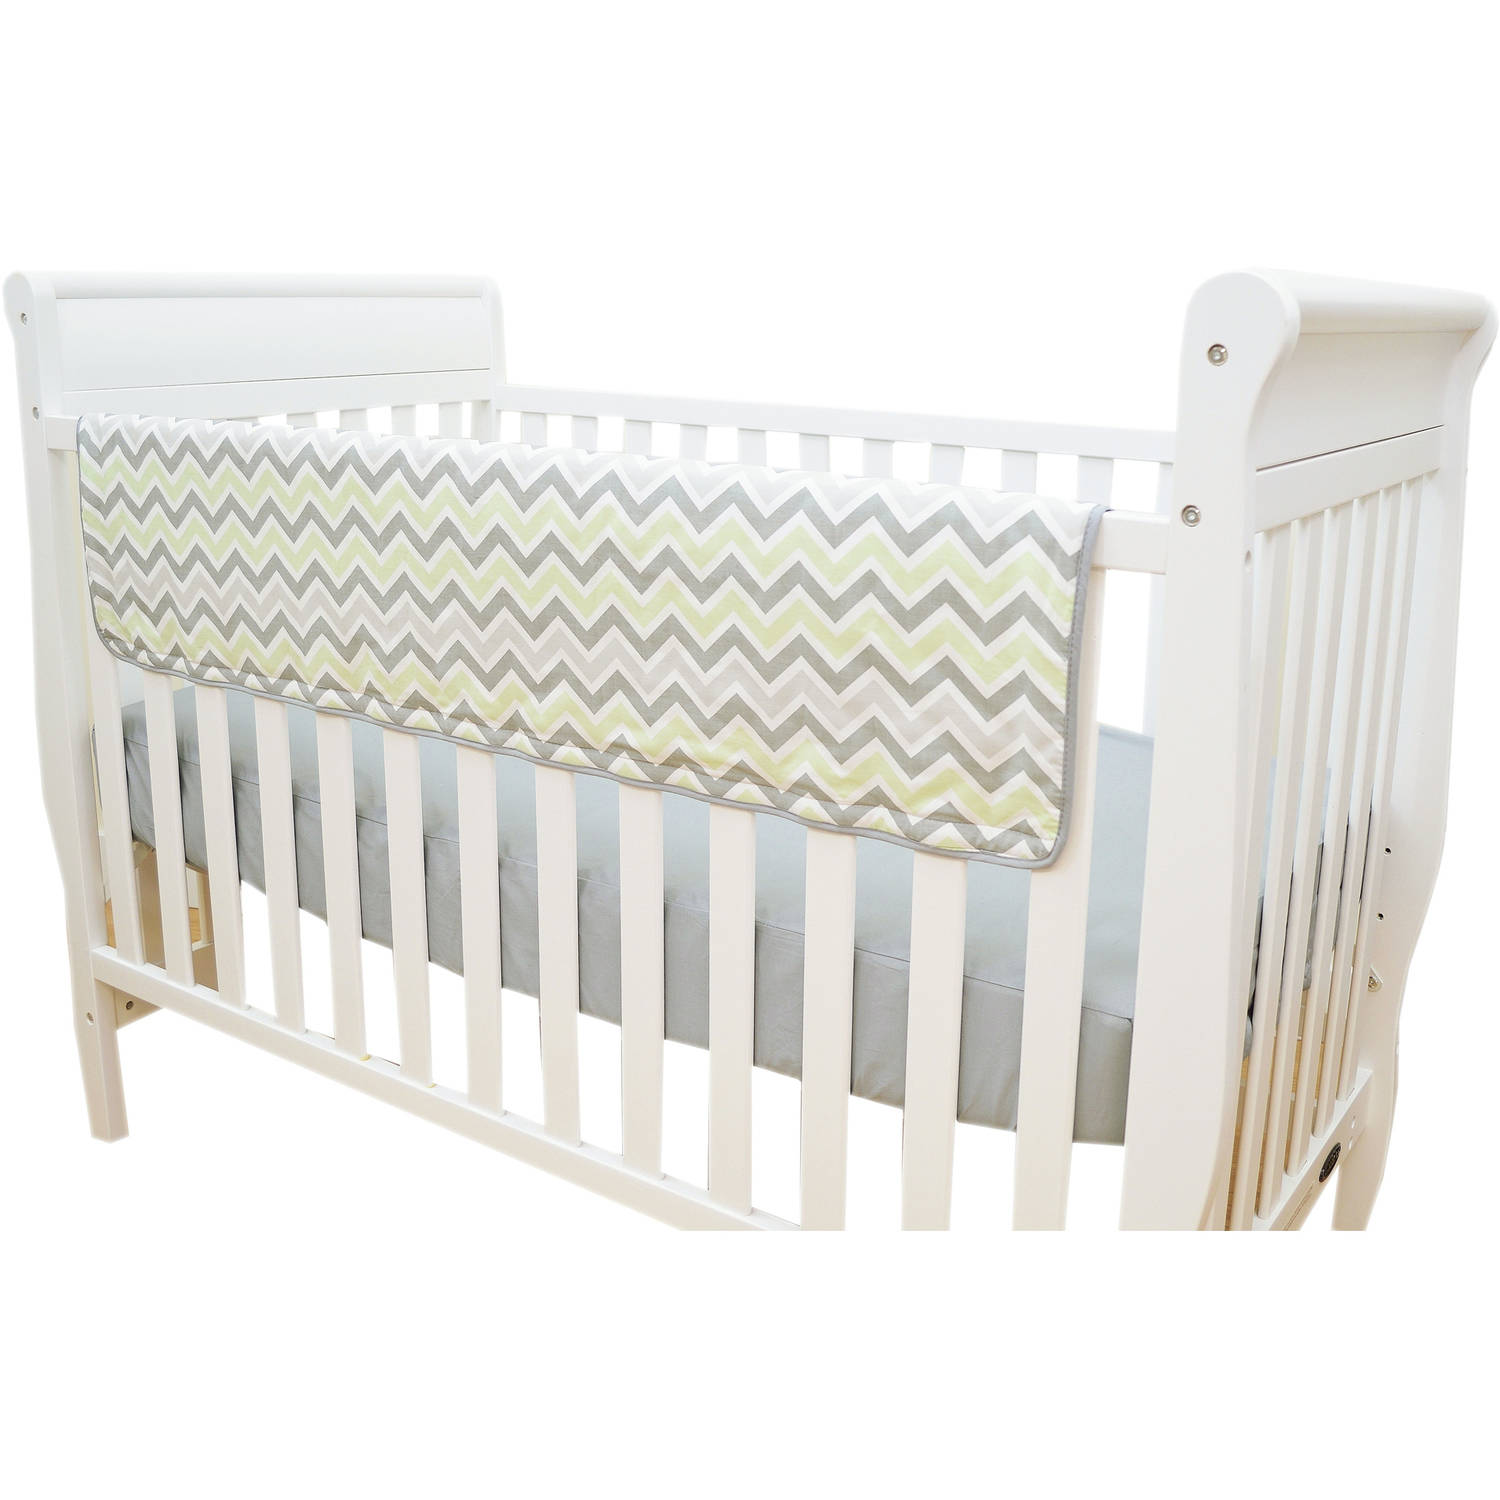 TL Care Crib Rail Cover, Celery Zigzag